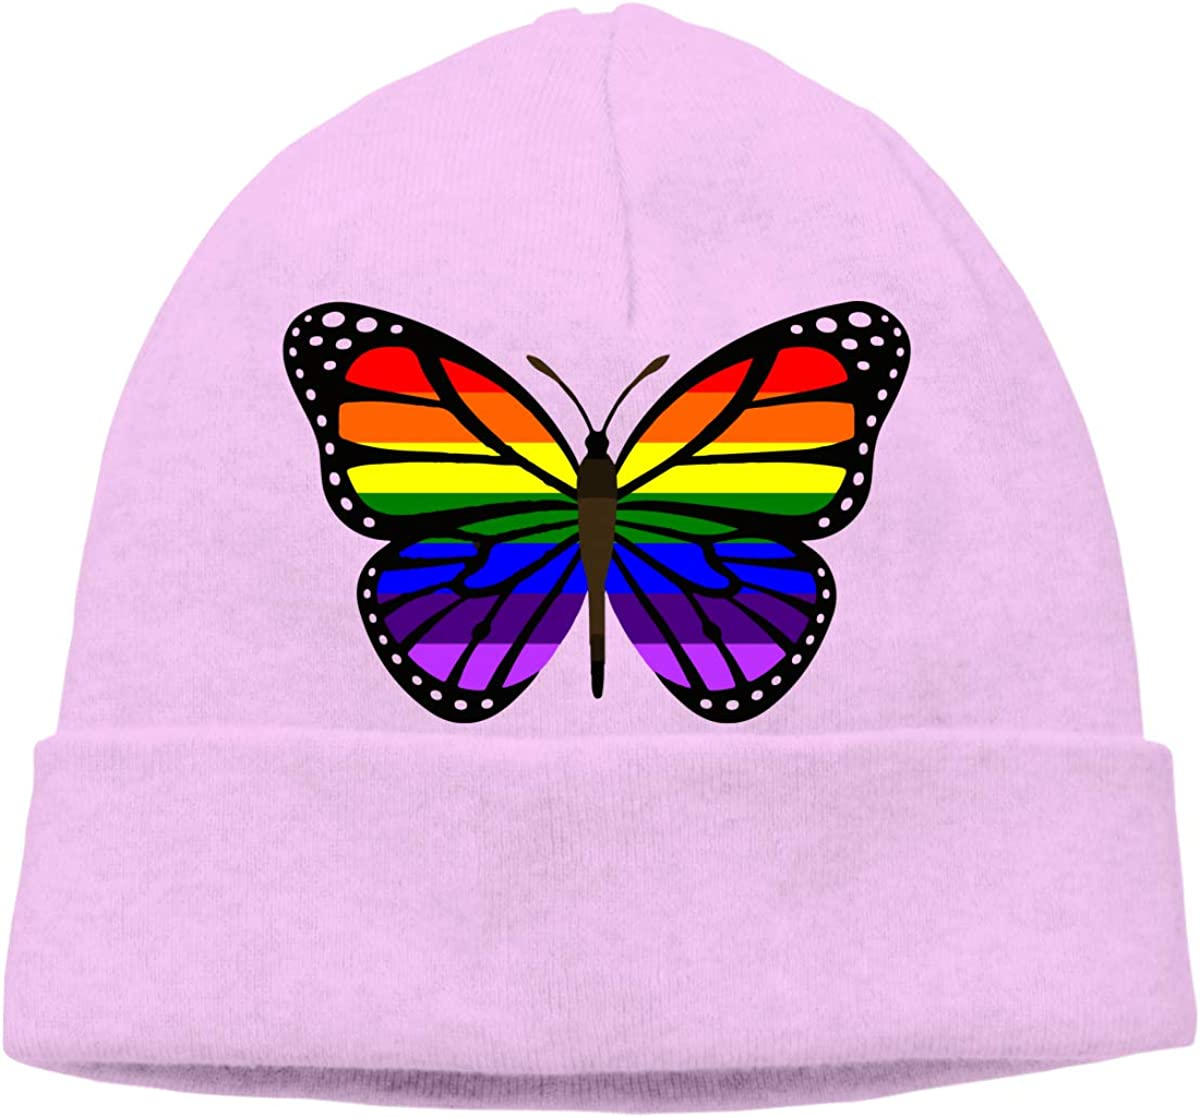 BF5Y3z/&MA ButterFlag LGBT Flag Beanie Hat for Men Women,Soft Knit Cap Skiing Cap